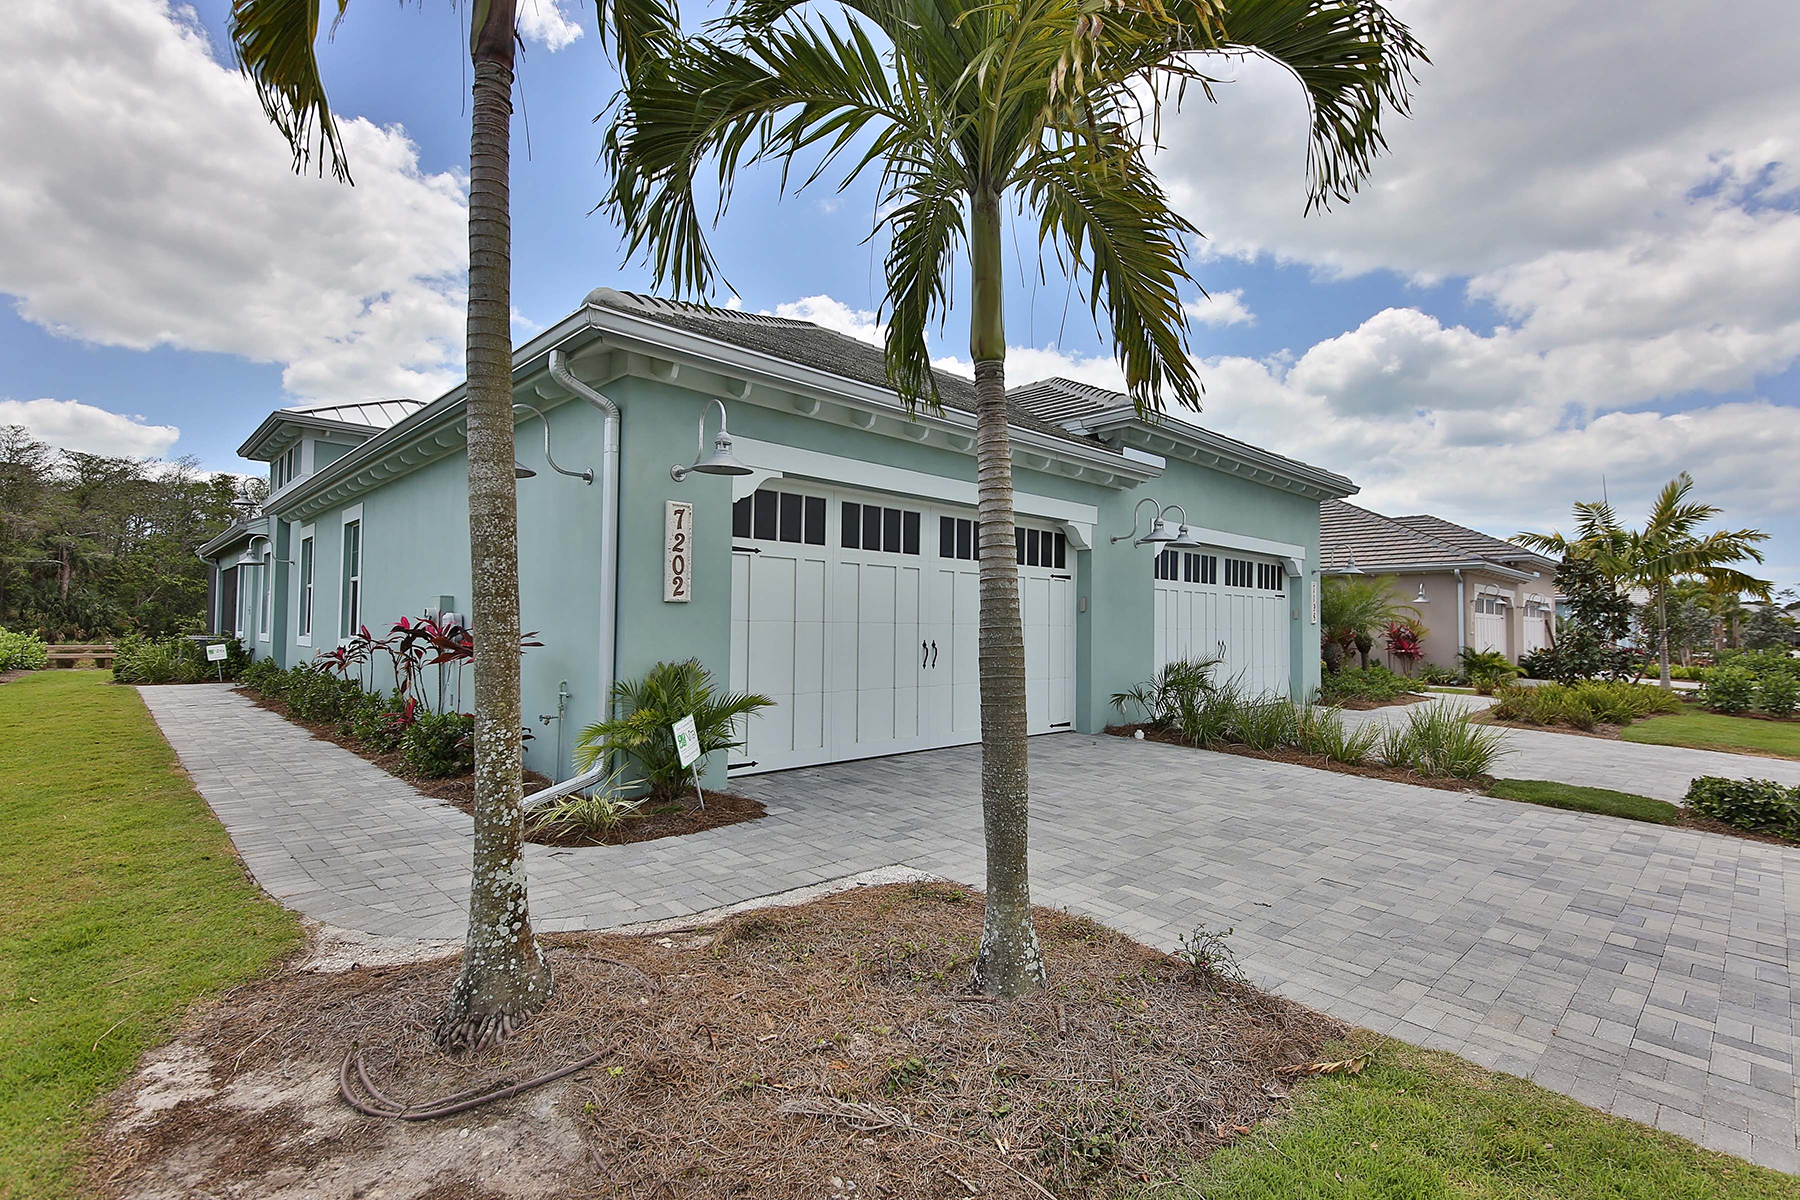 Townhouse for Rent at ISLES OF COLLIERS PRESERVE - COLLIERS PRESERVE 7202 Dominica Dr, Naples, Florida 34113 United States